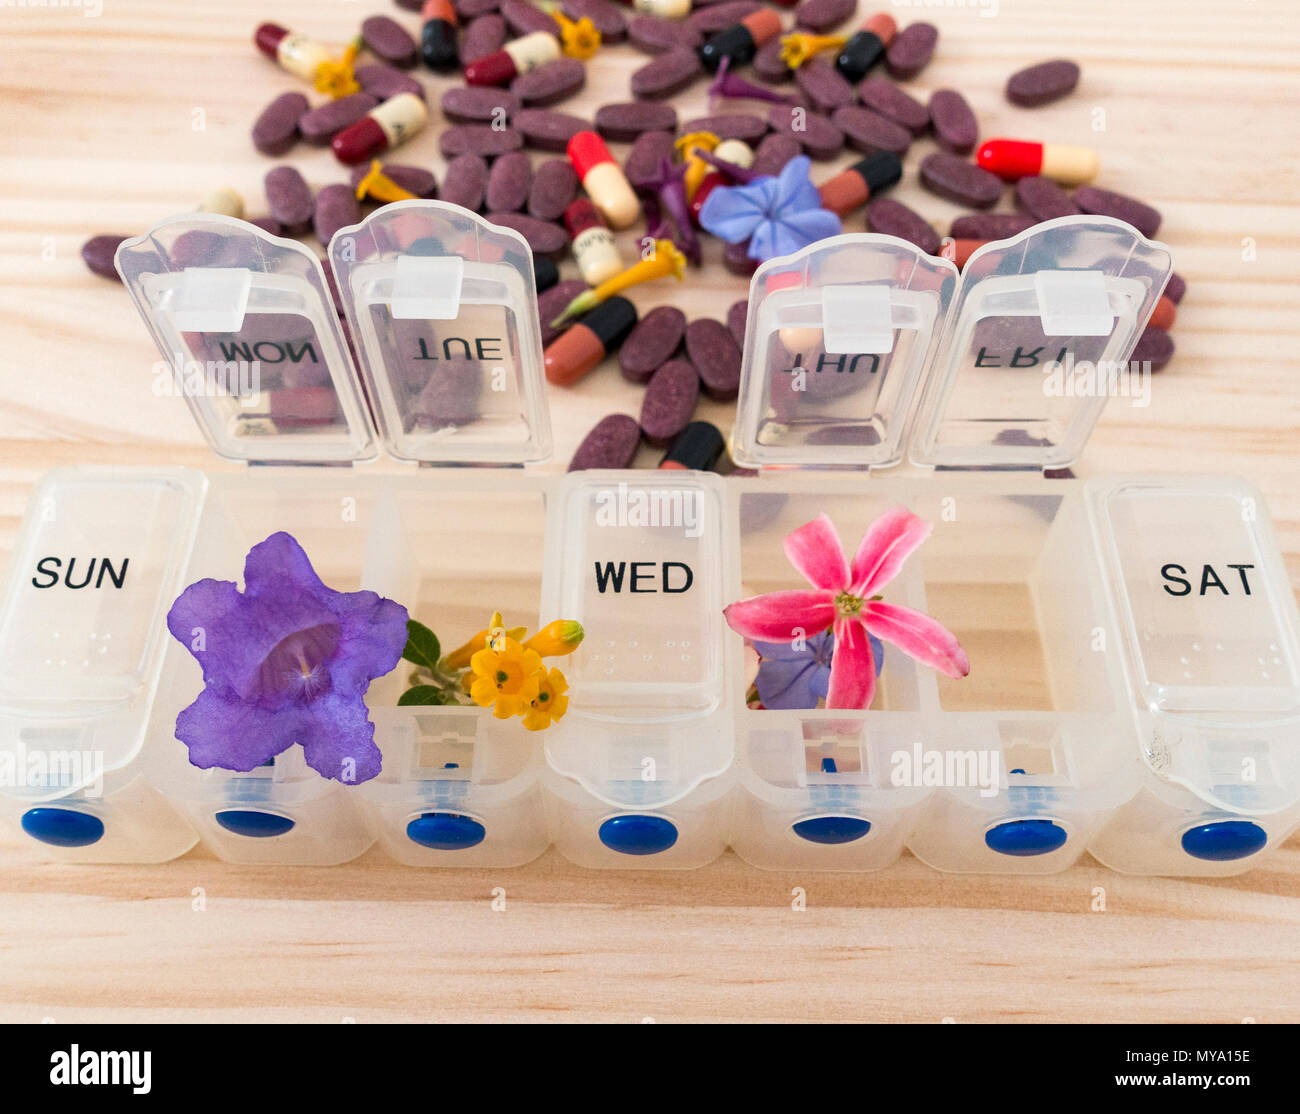 Homeopathy concept image: weekly pill organizer with flowers with antibiotics and Cranberry tablets in background. - Stock Image